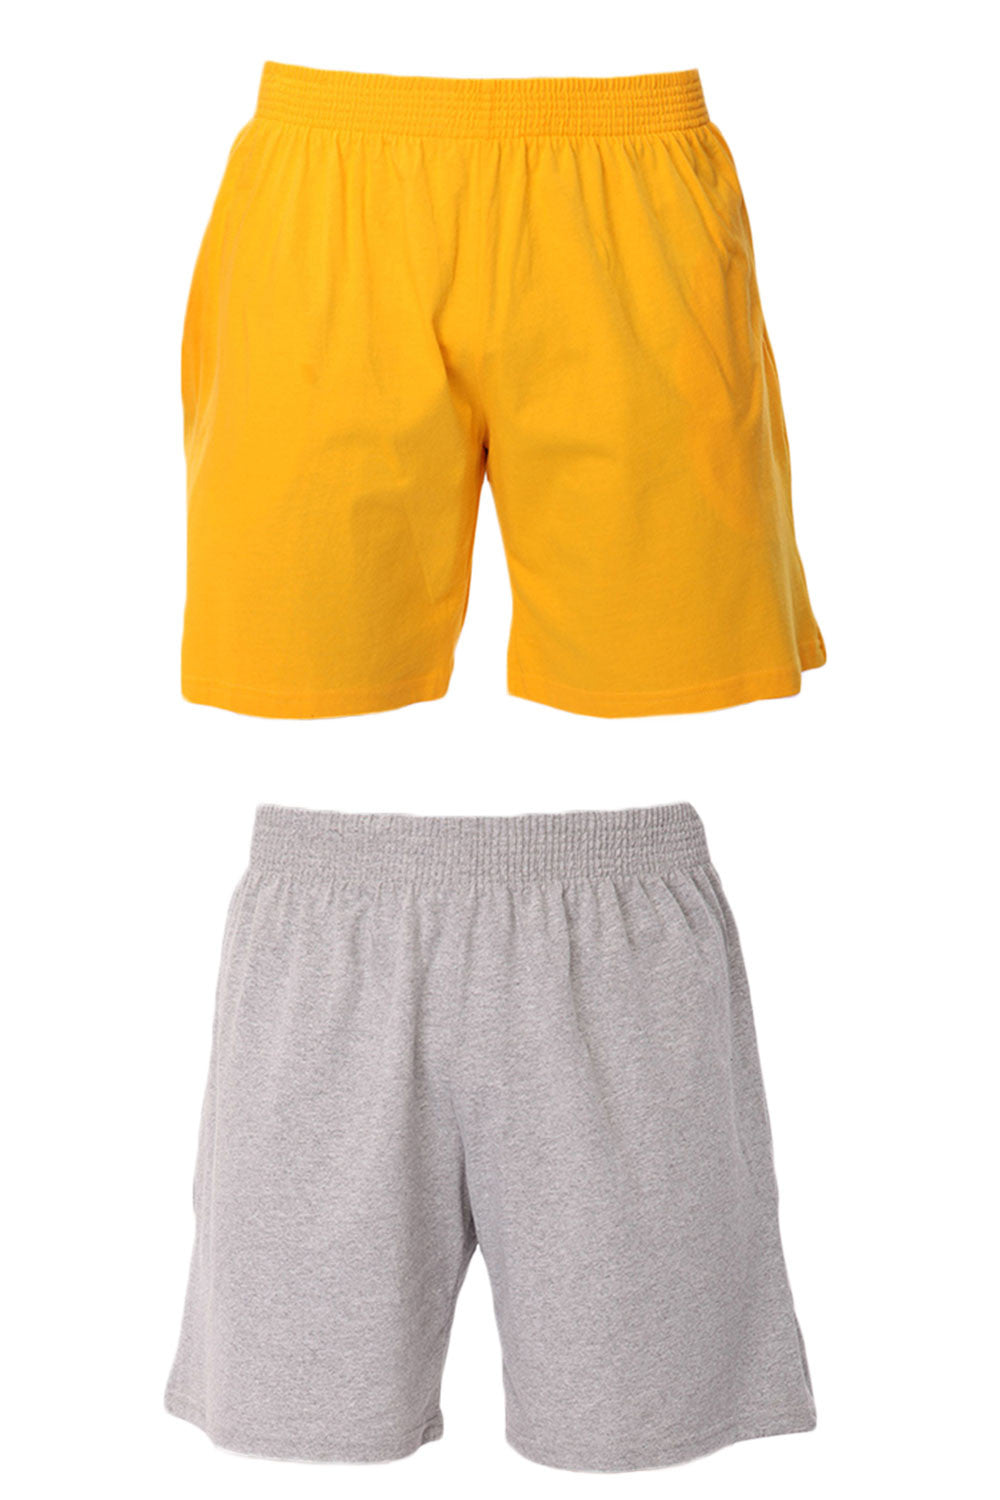 2 Pack Men's Jersey Pocket Short